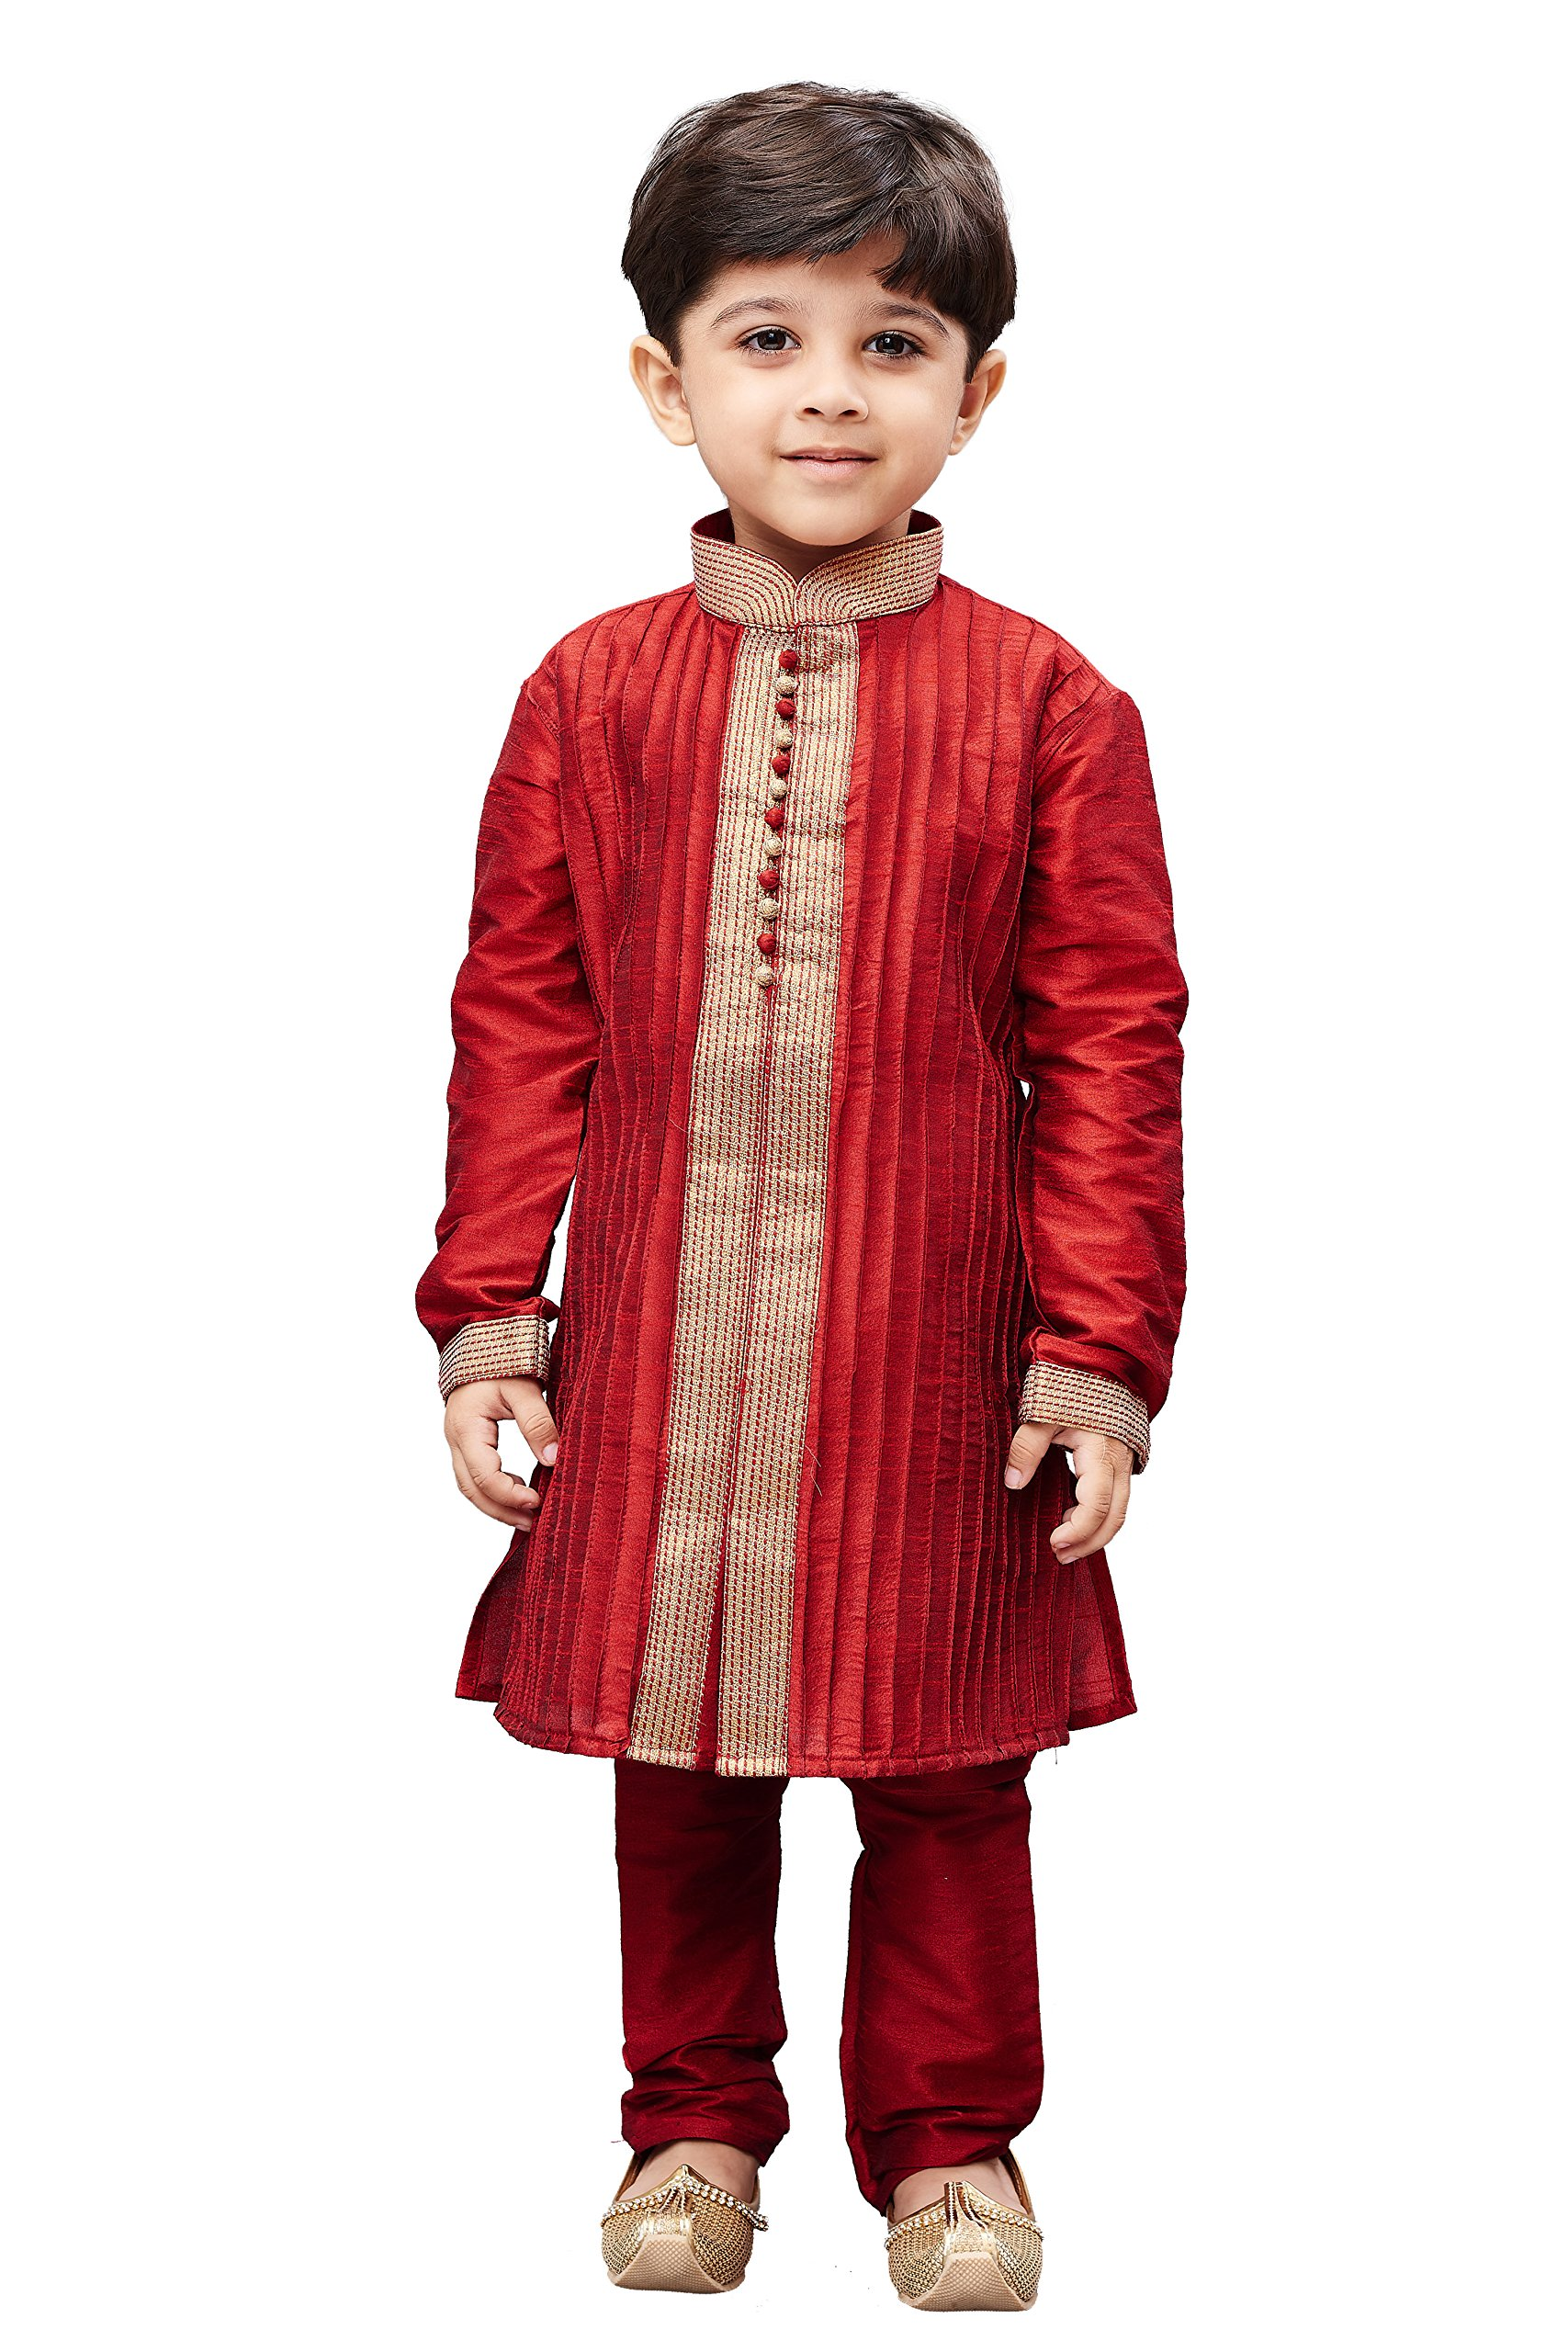 JBN Creation Boys' Maroon Cotton Silk Kurta Pyjama Set(VASBKMA003nPMA_32)